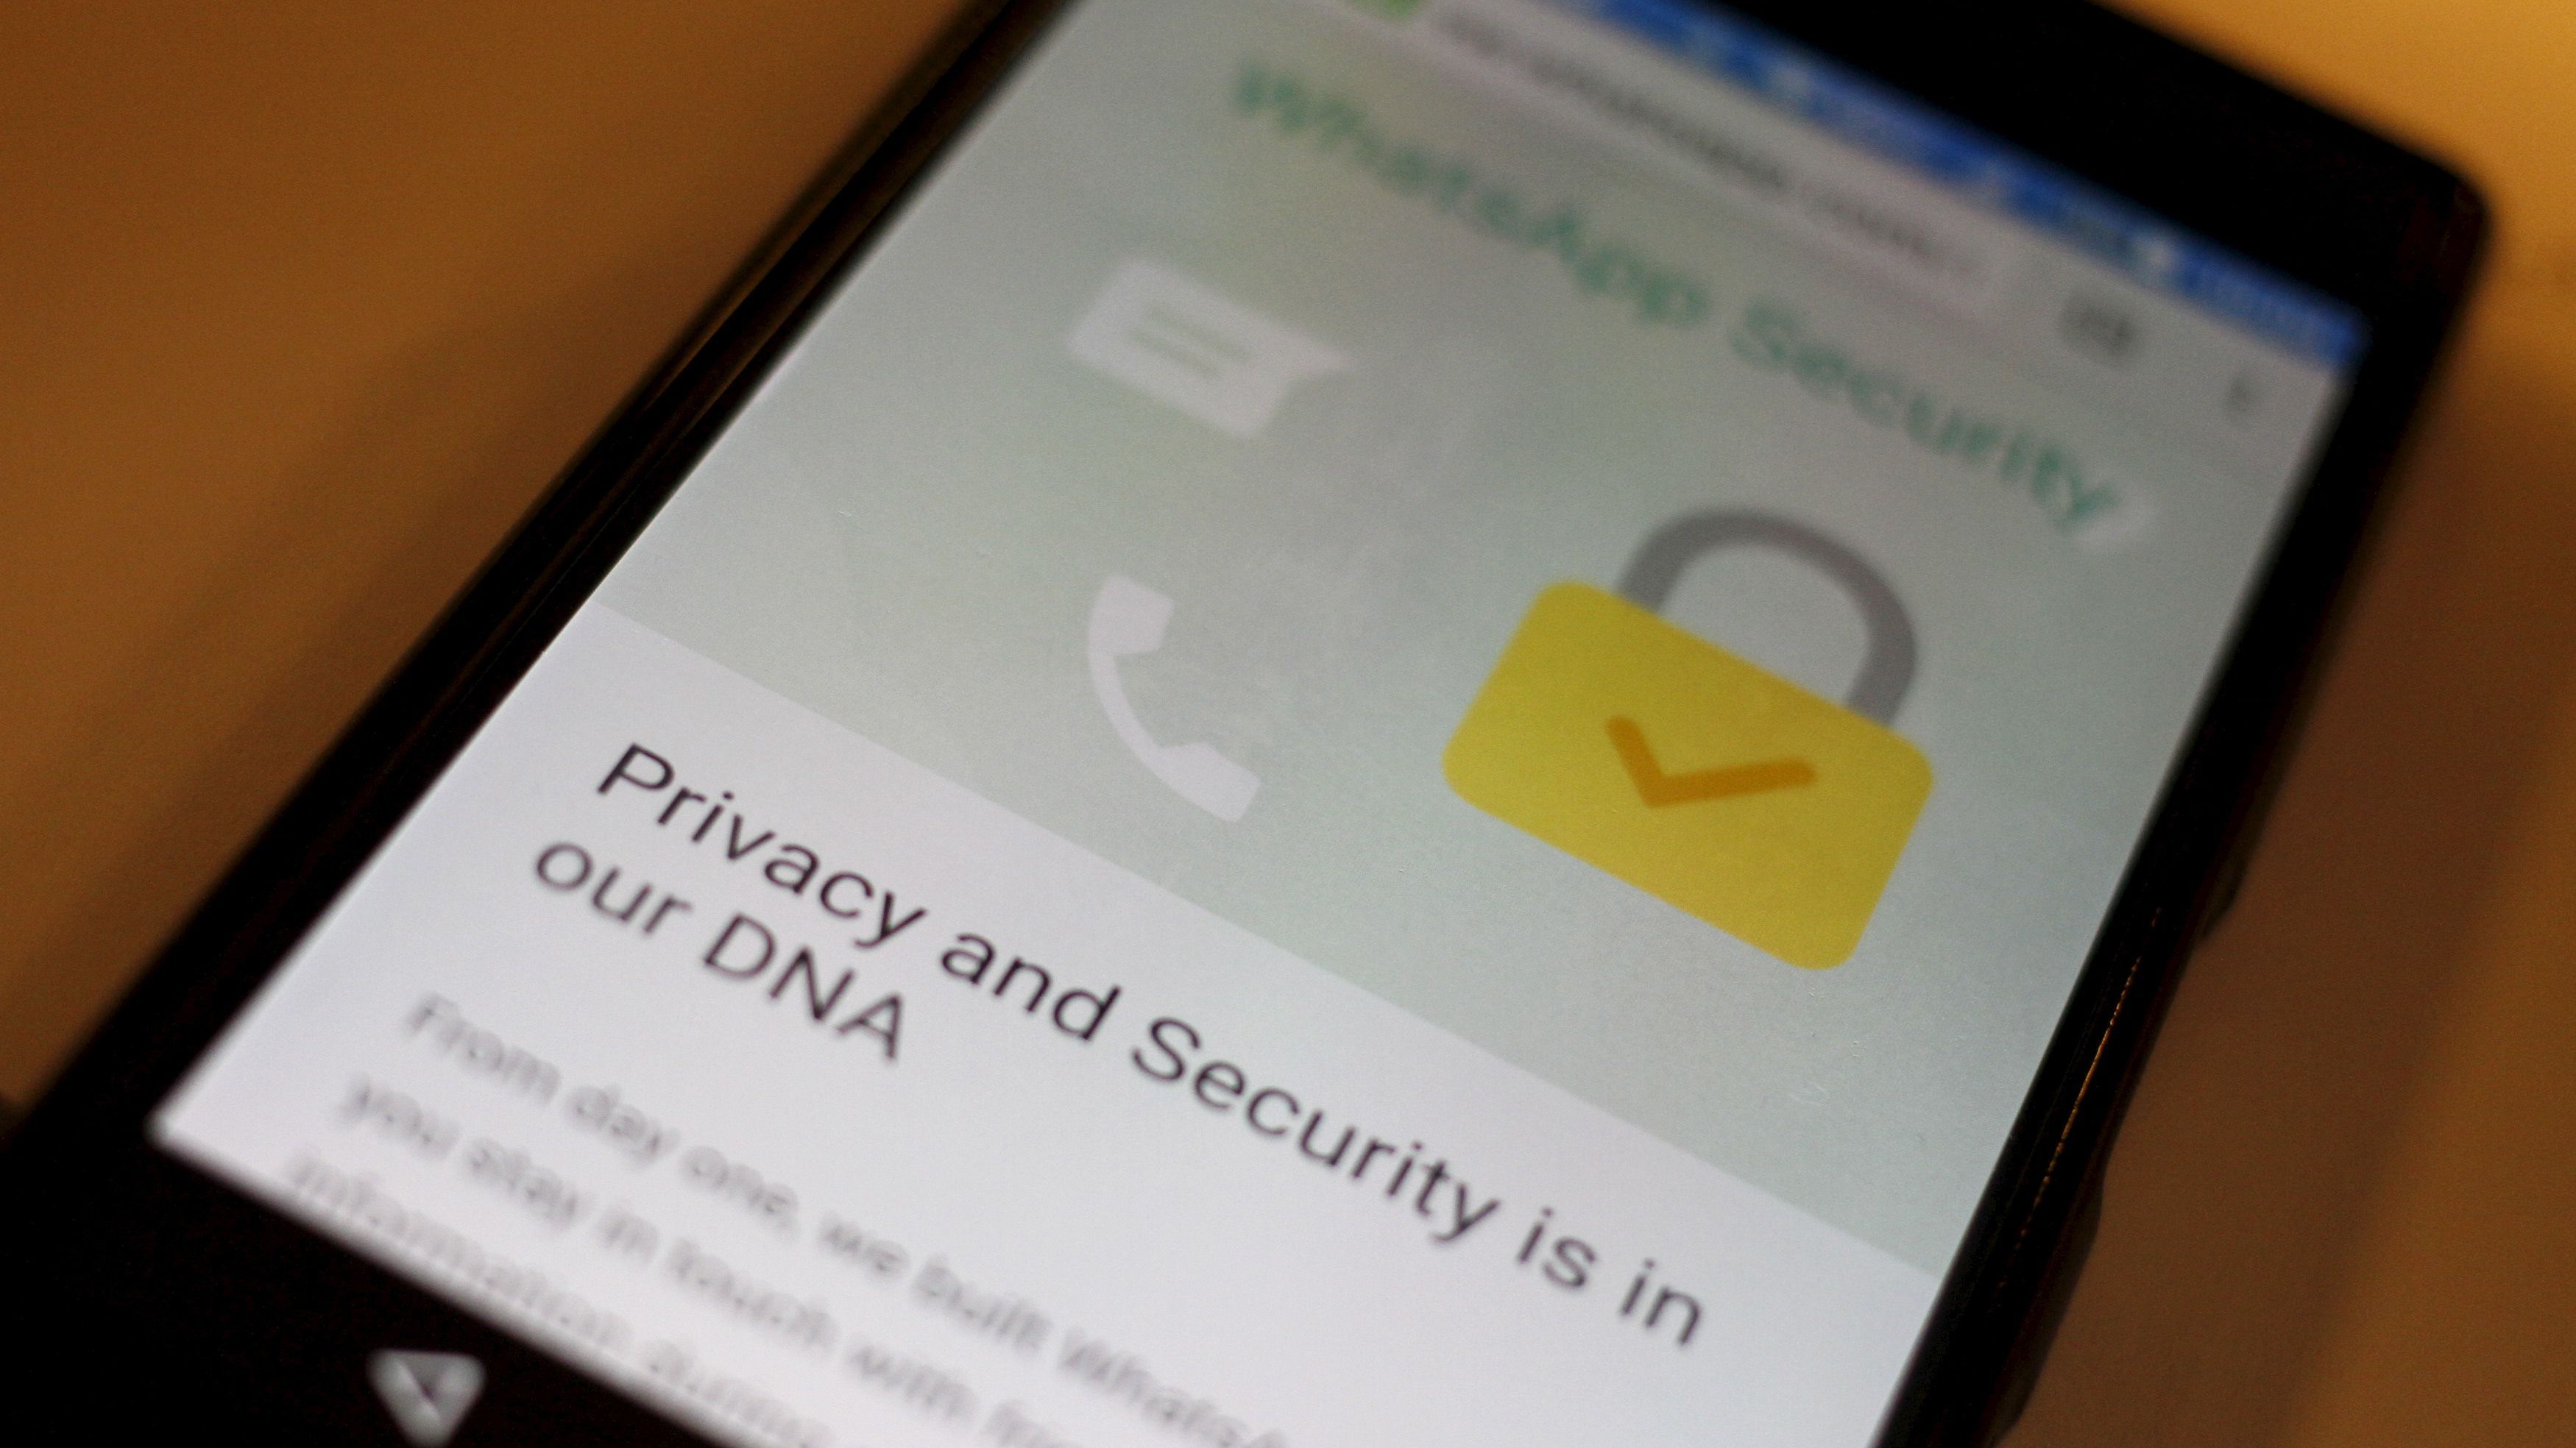 WhatsApp's new encryption won't protect you unless you're